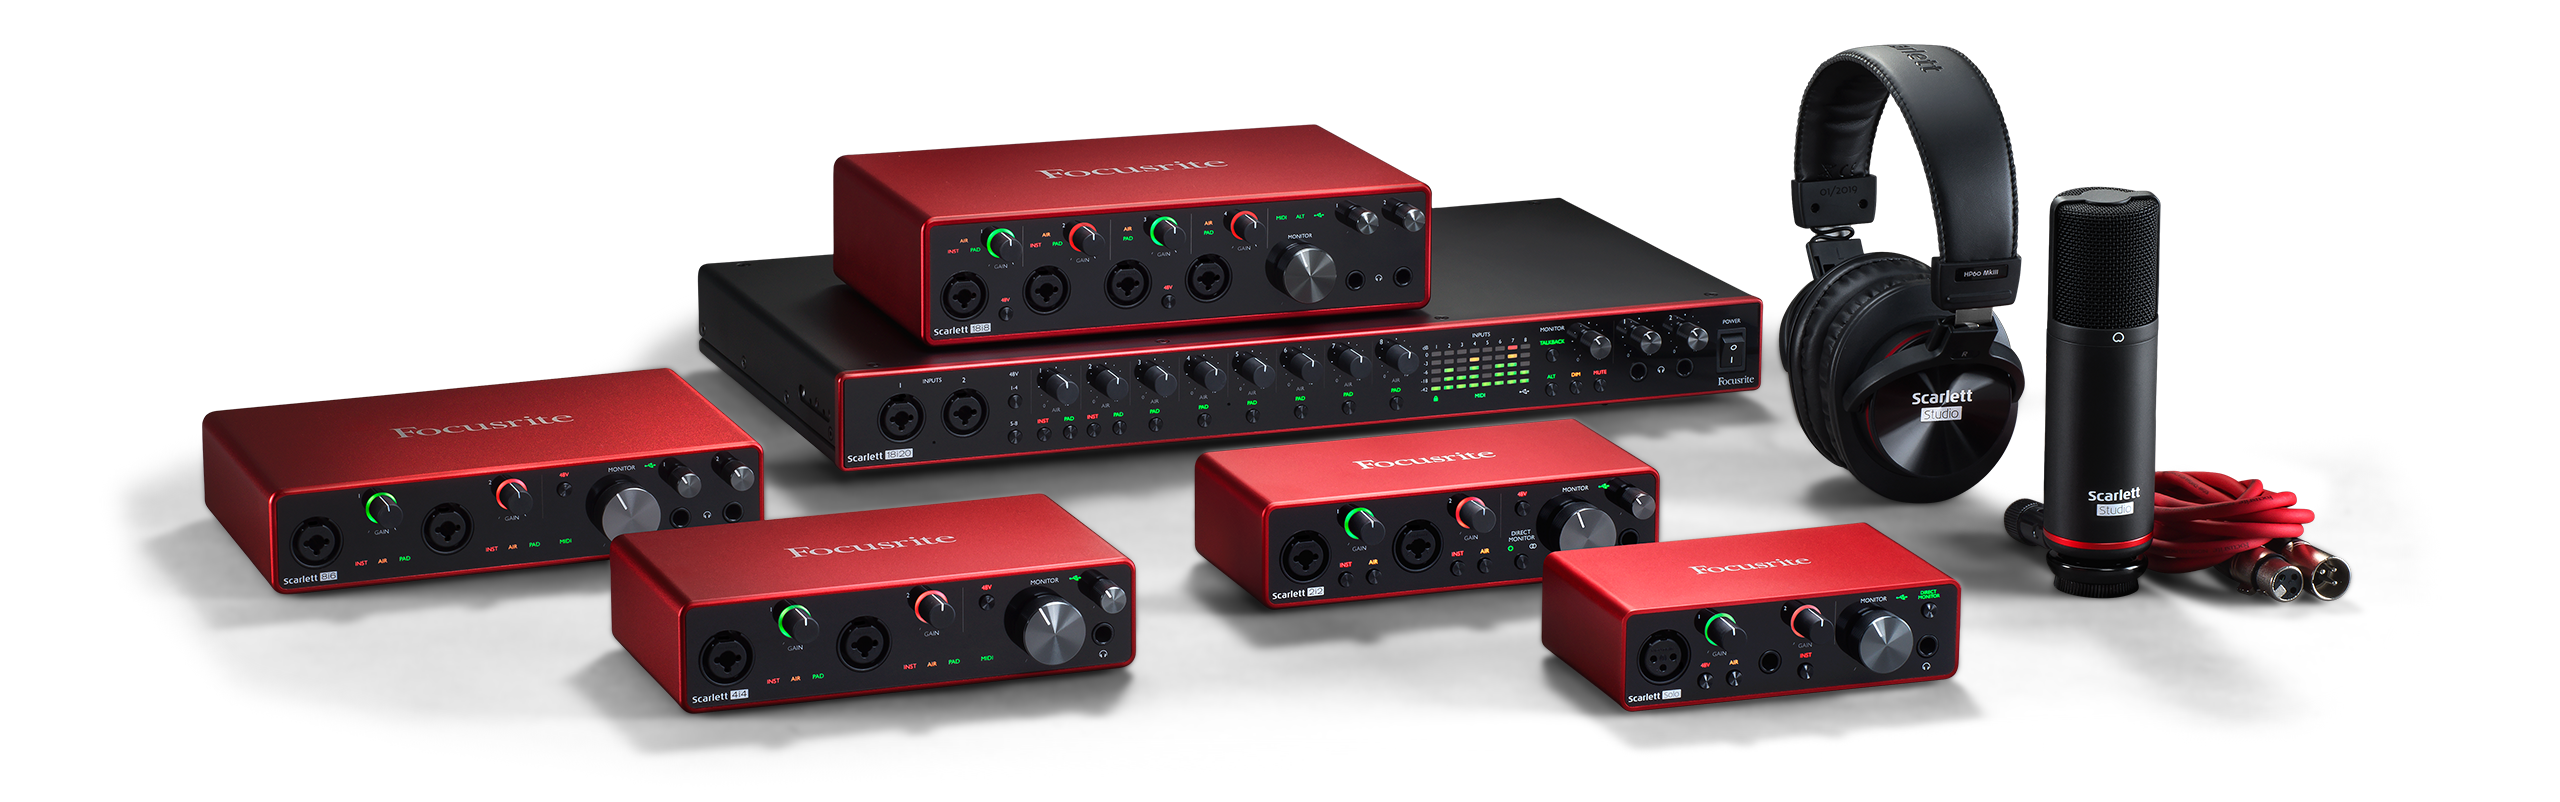 Focusrite Scarlett 3rd Generation Series